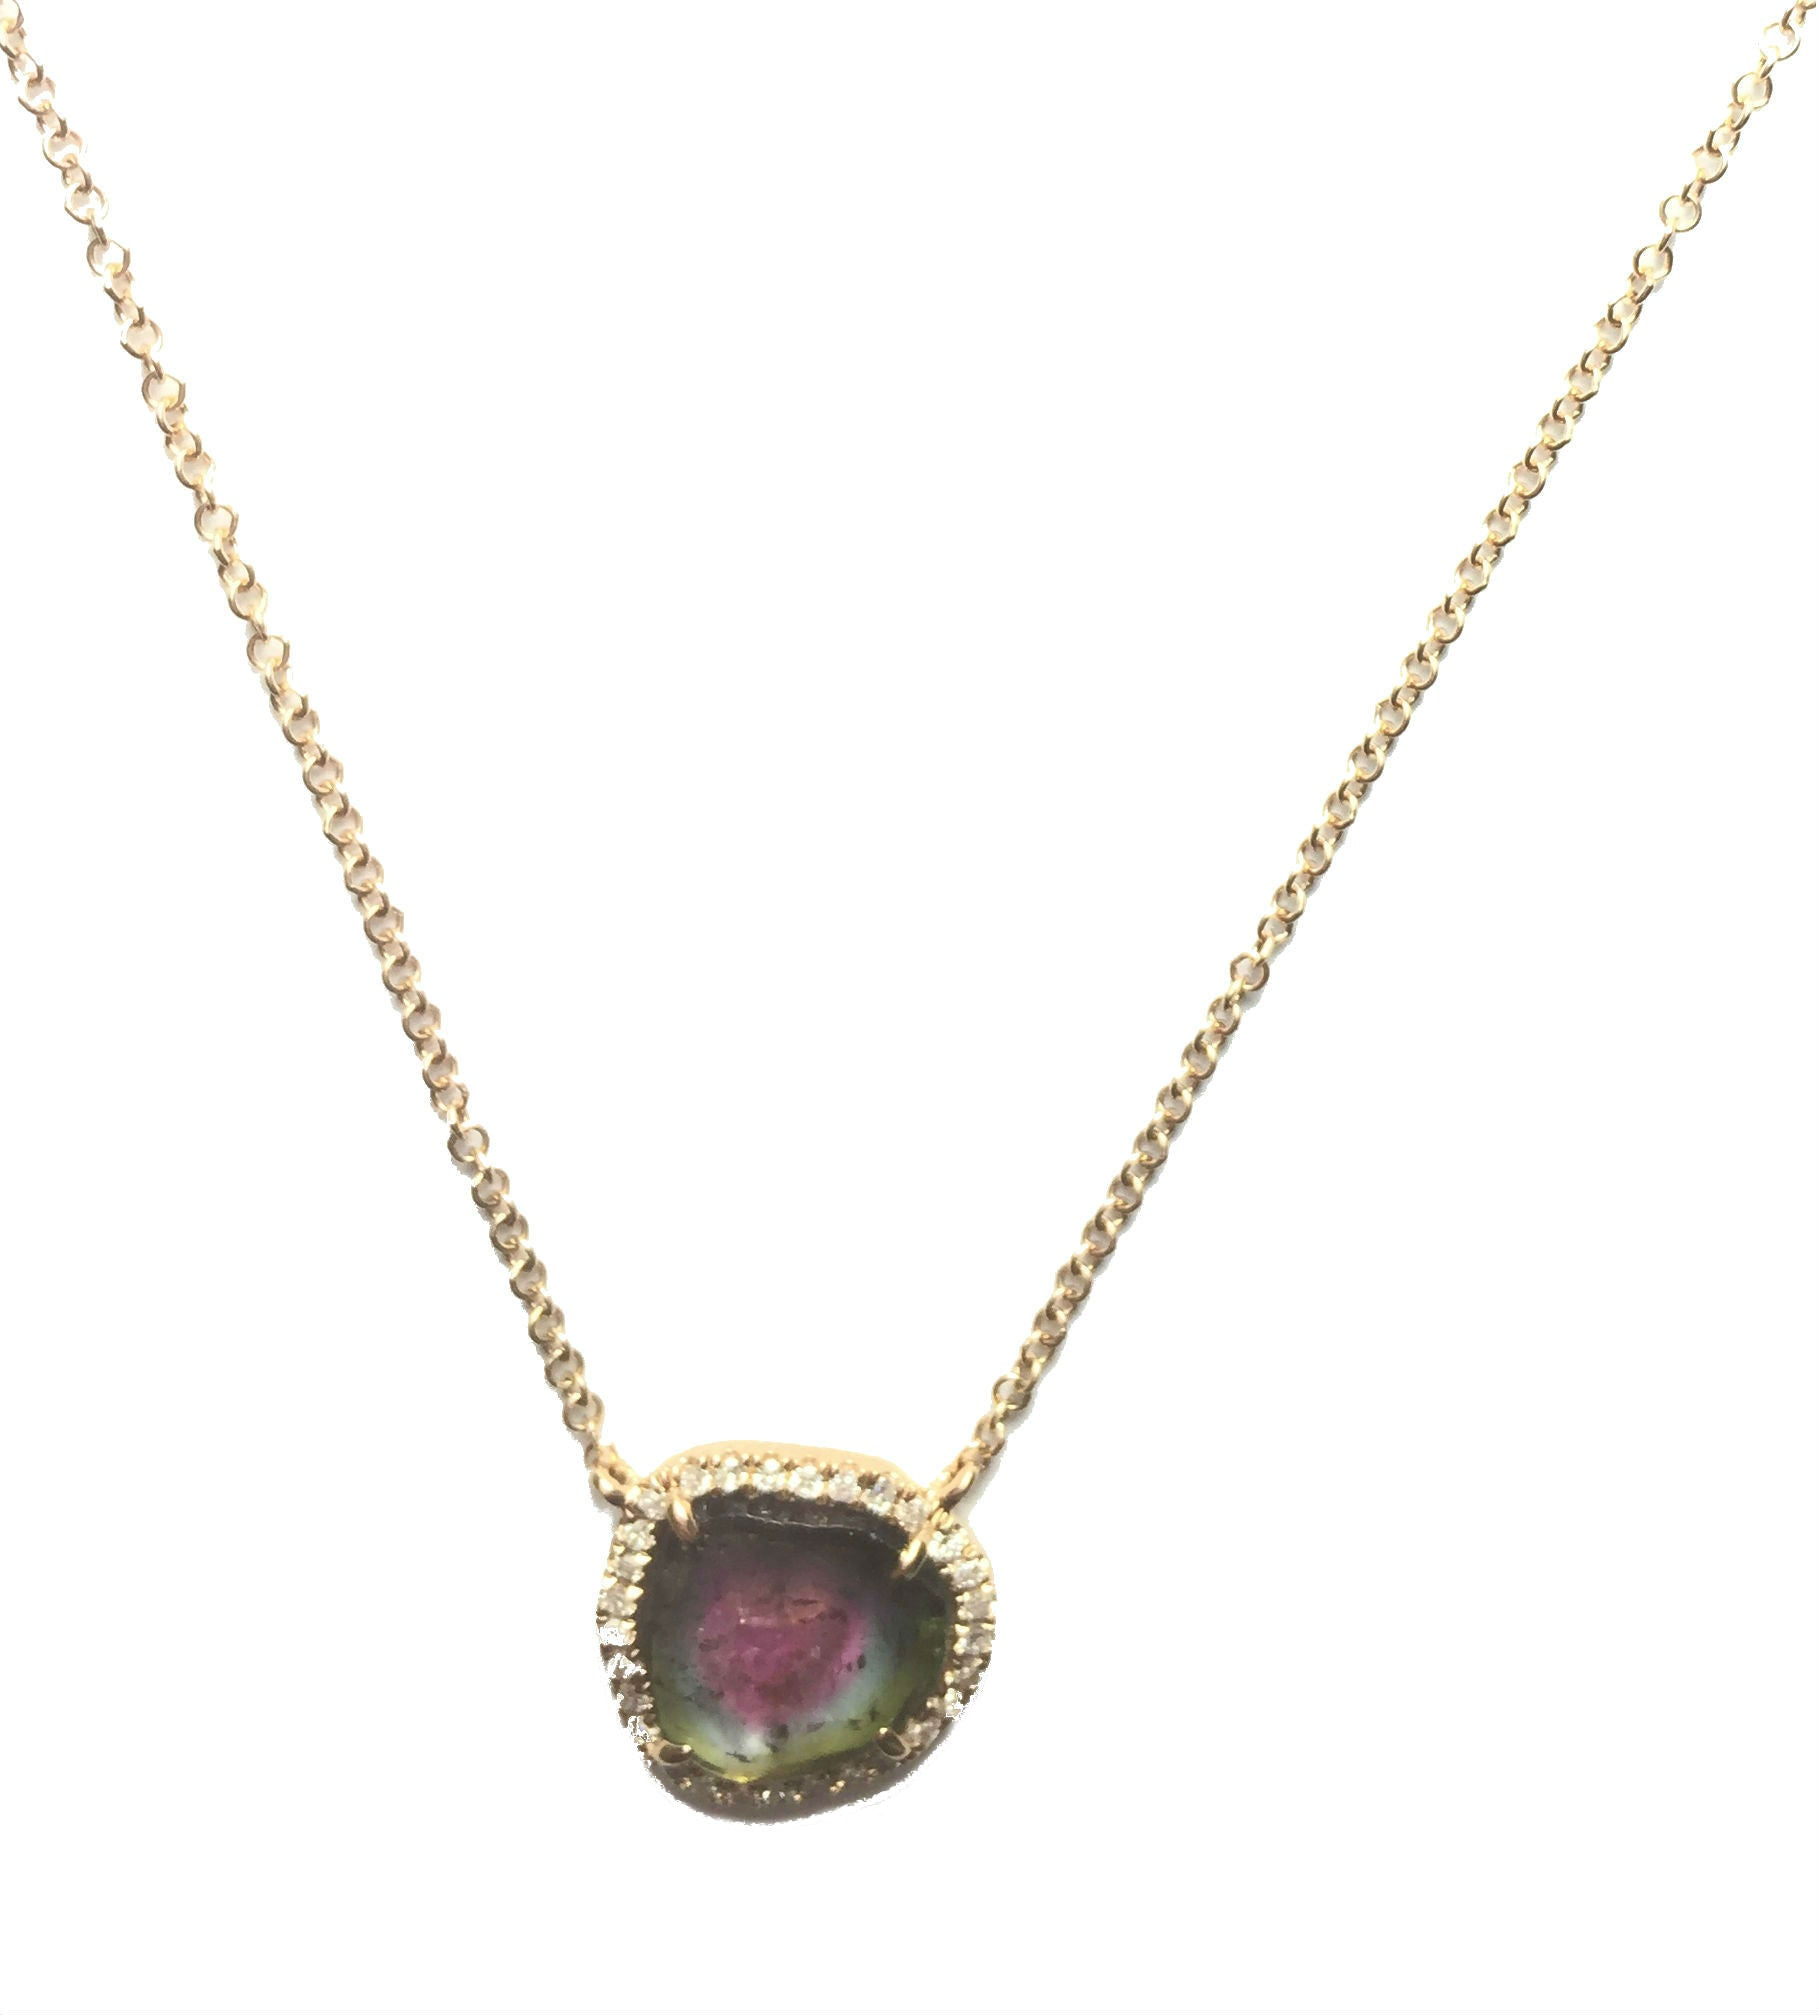 Watermelon Tourmaline Necklace with Diamond Circle